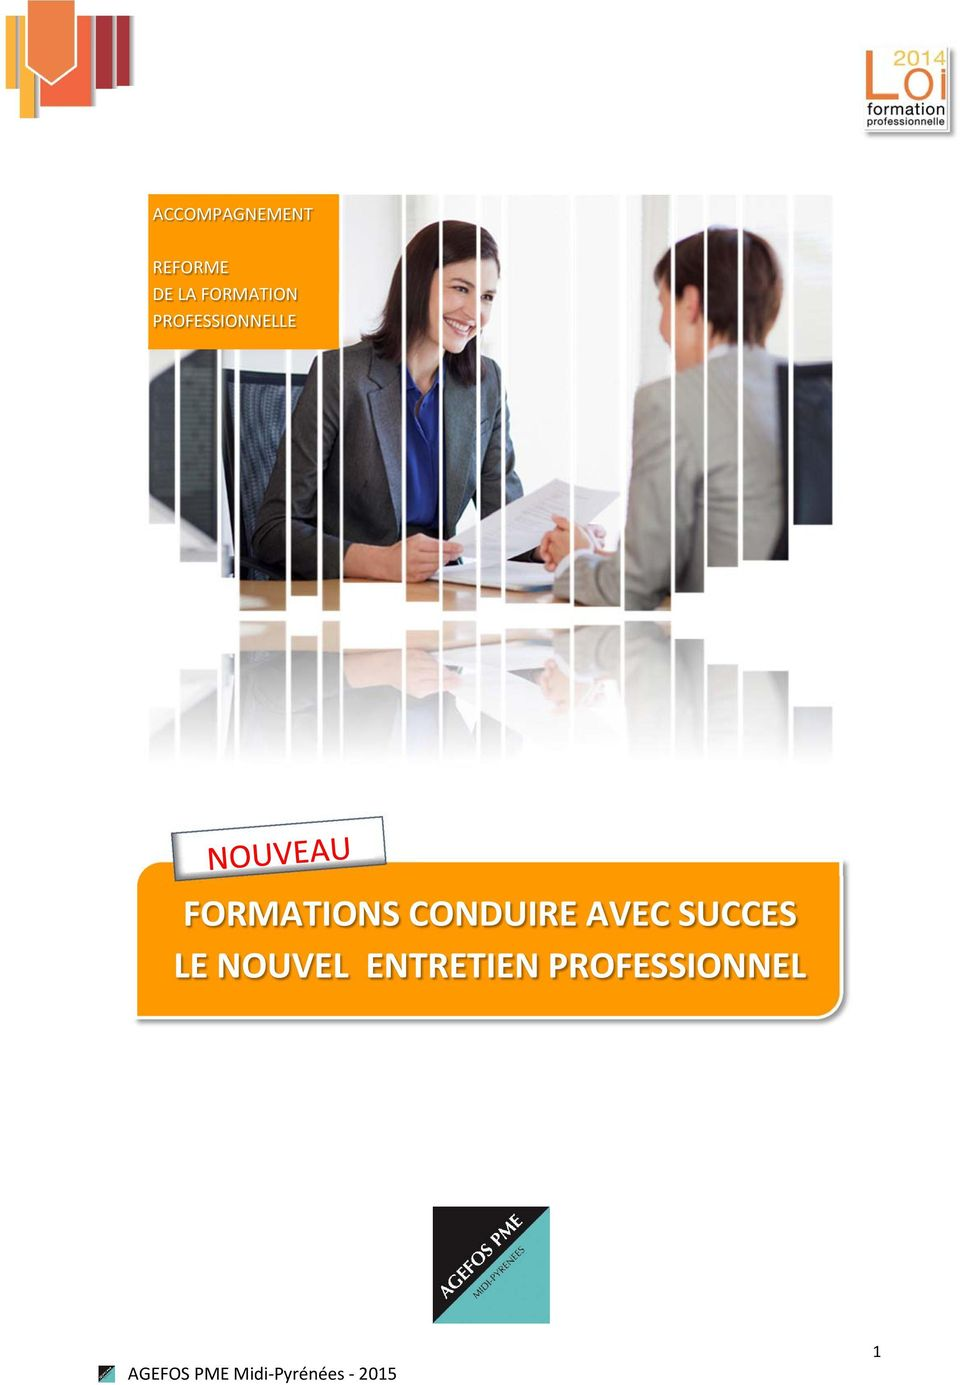 FORMATIONS CONDUIRE AVEC